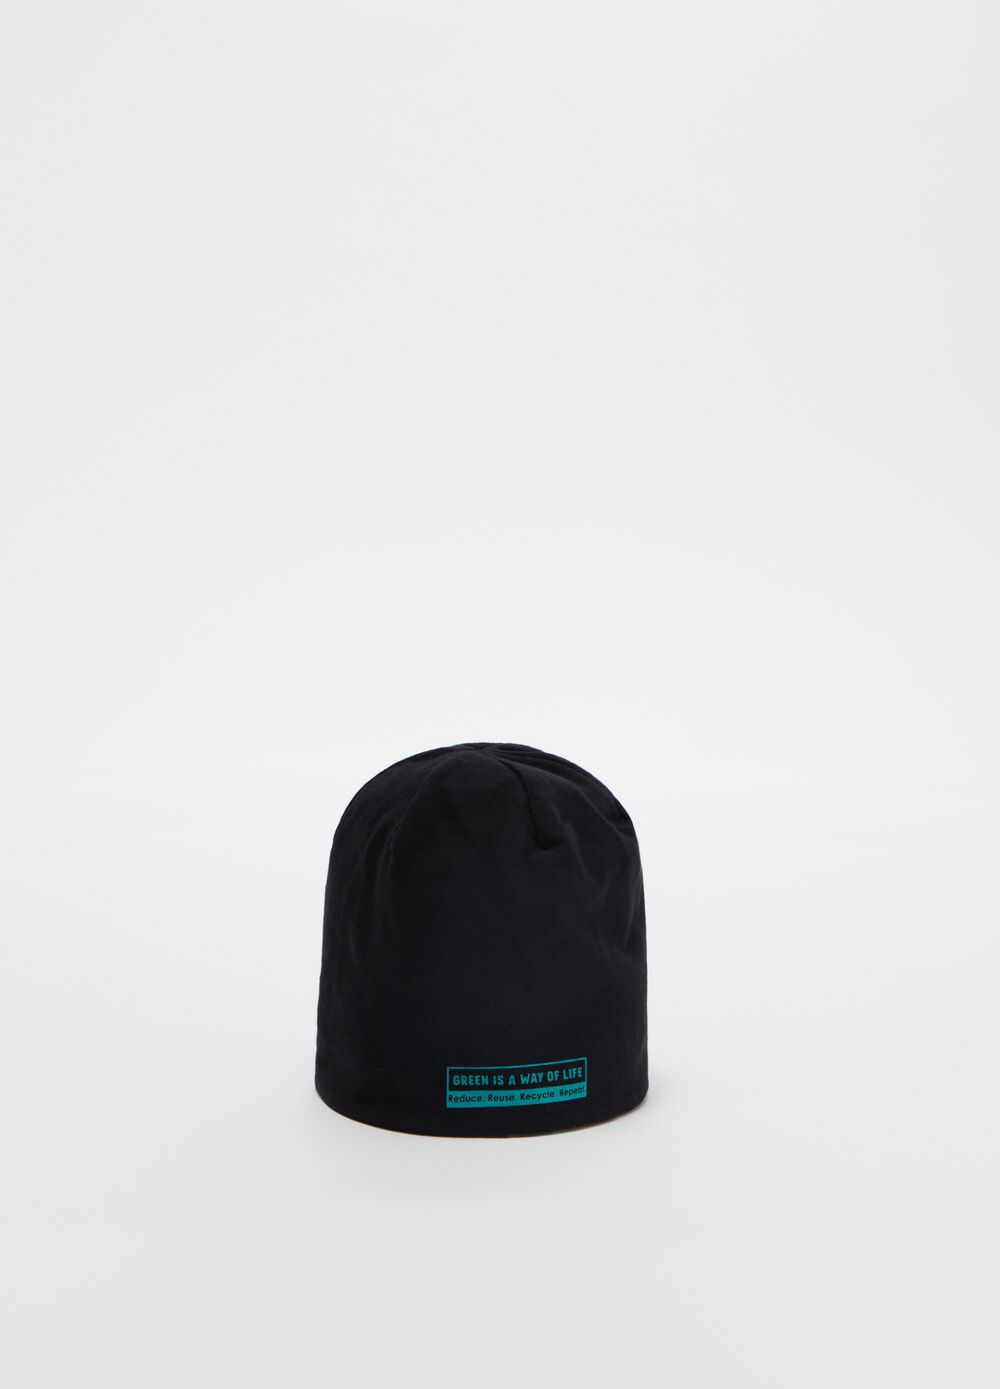 Double-sided printed jersey cap